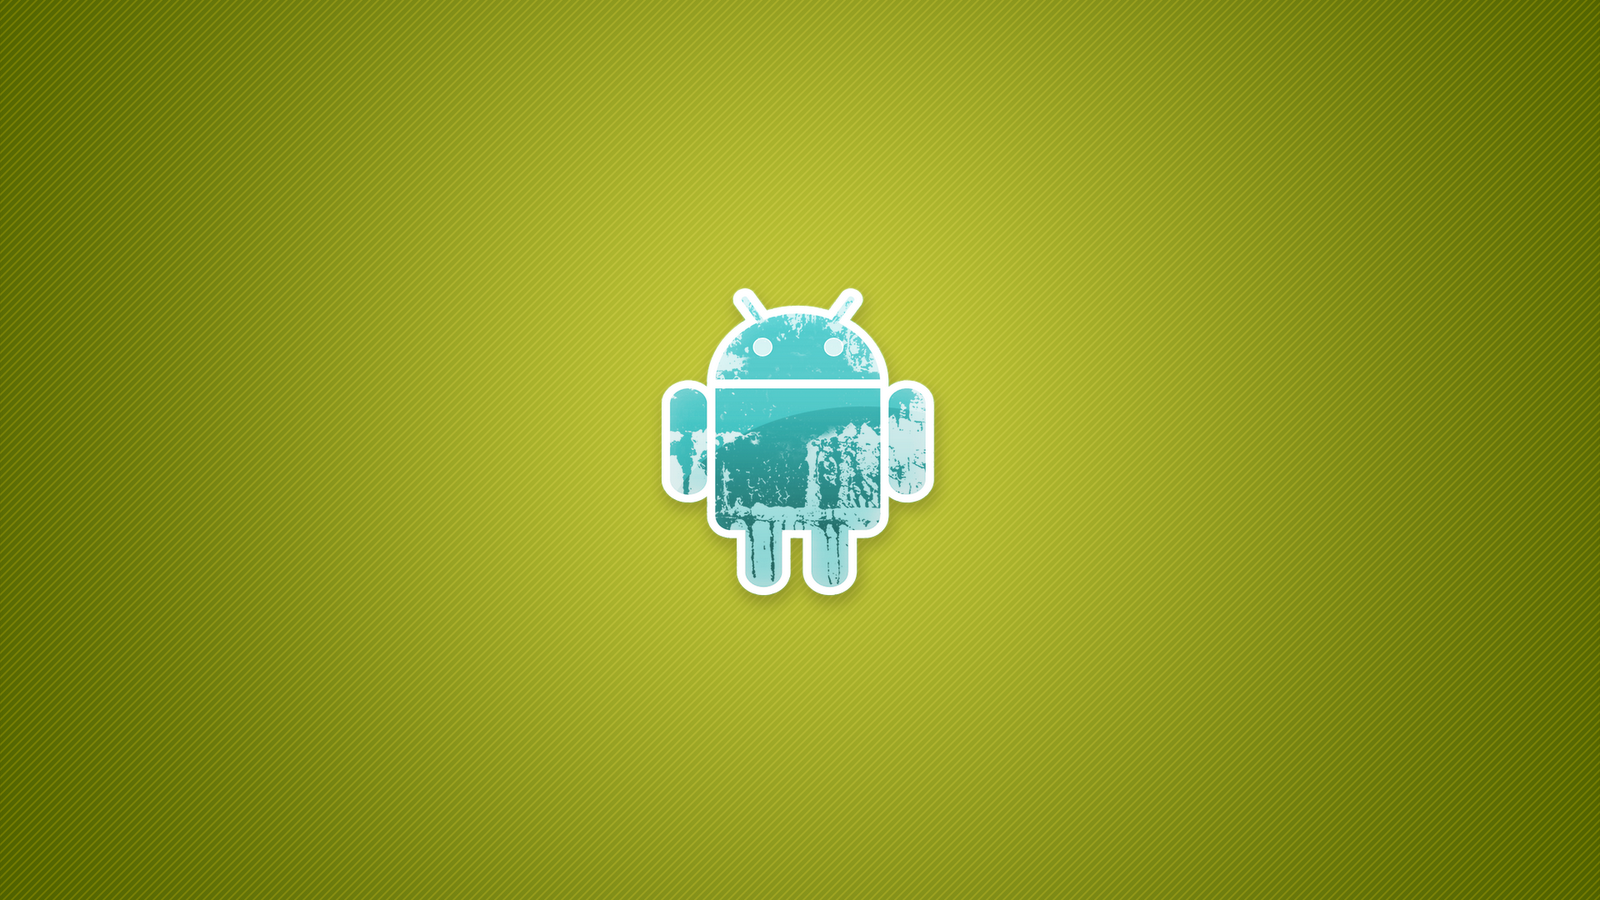 Android HD Wallpaper For Tablet ~ Wall2U